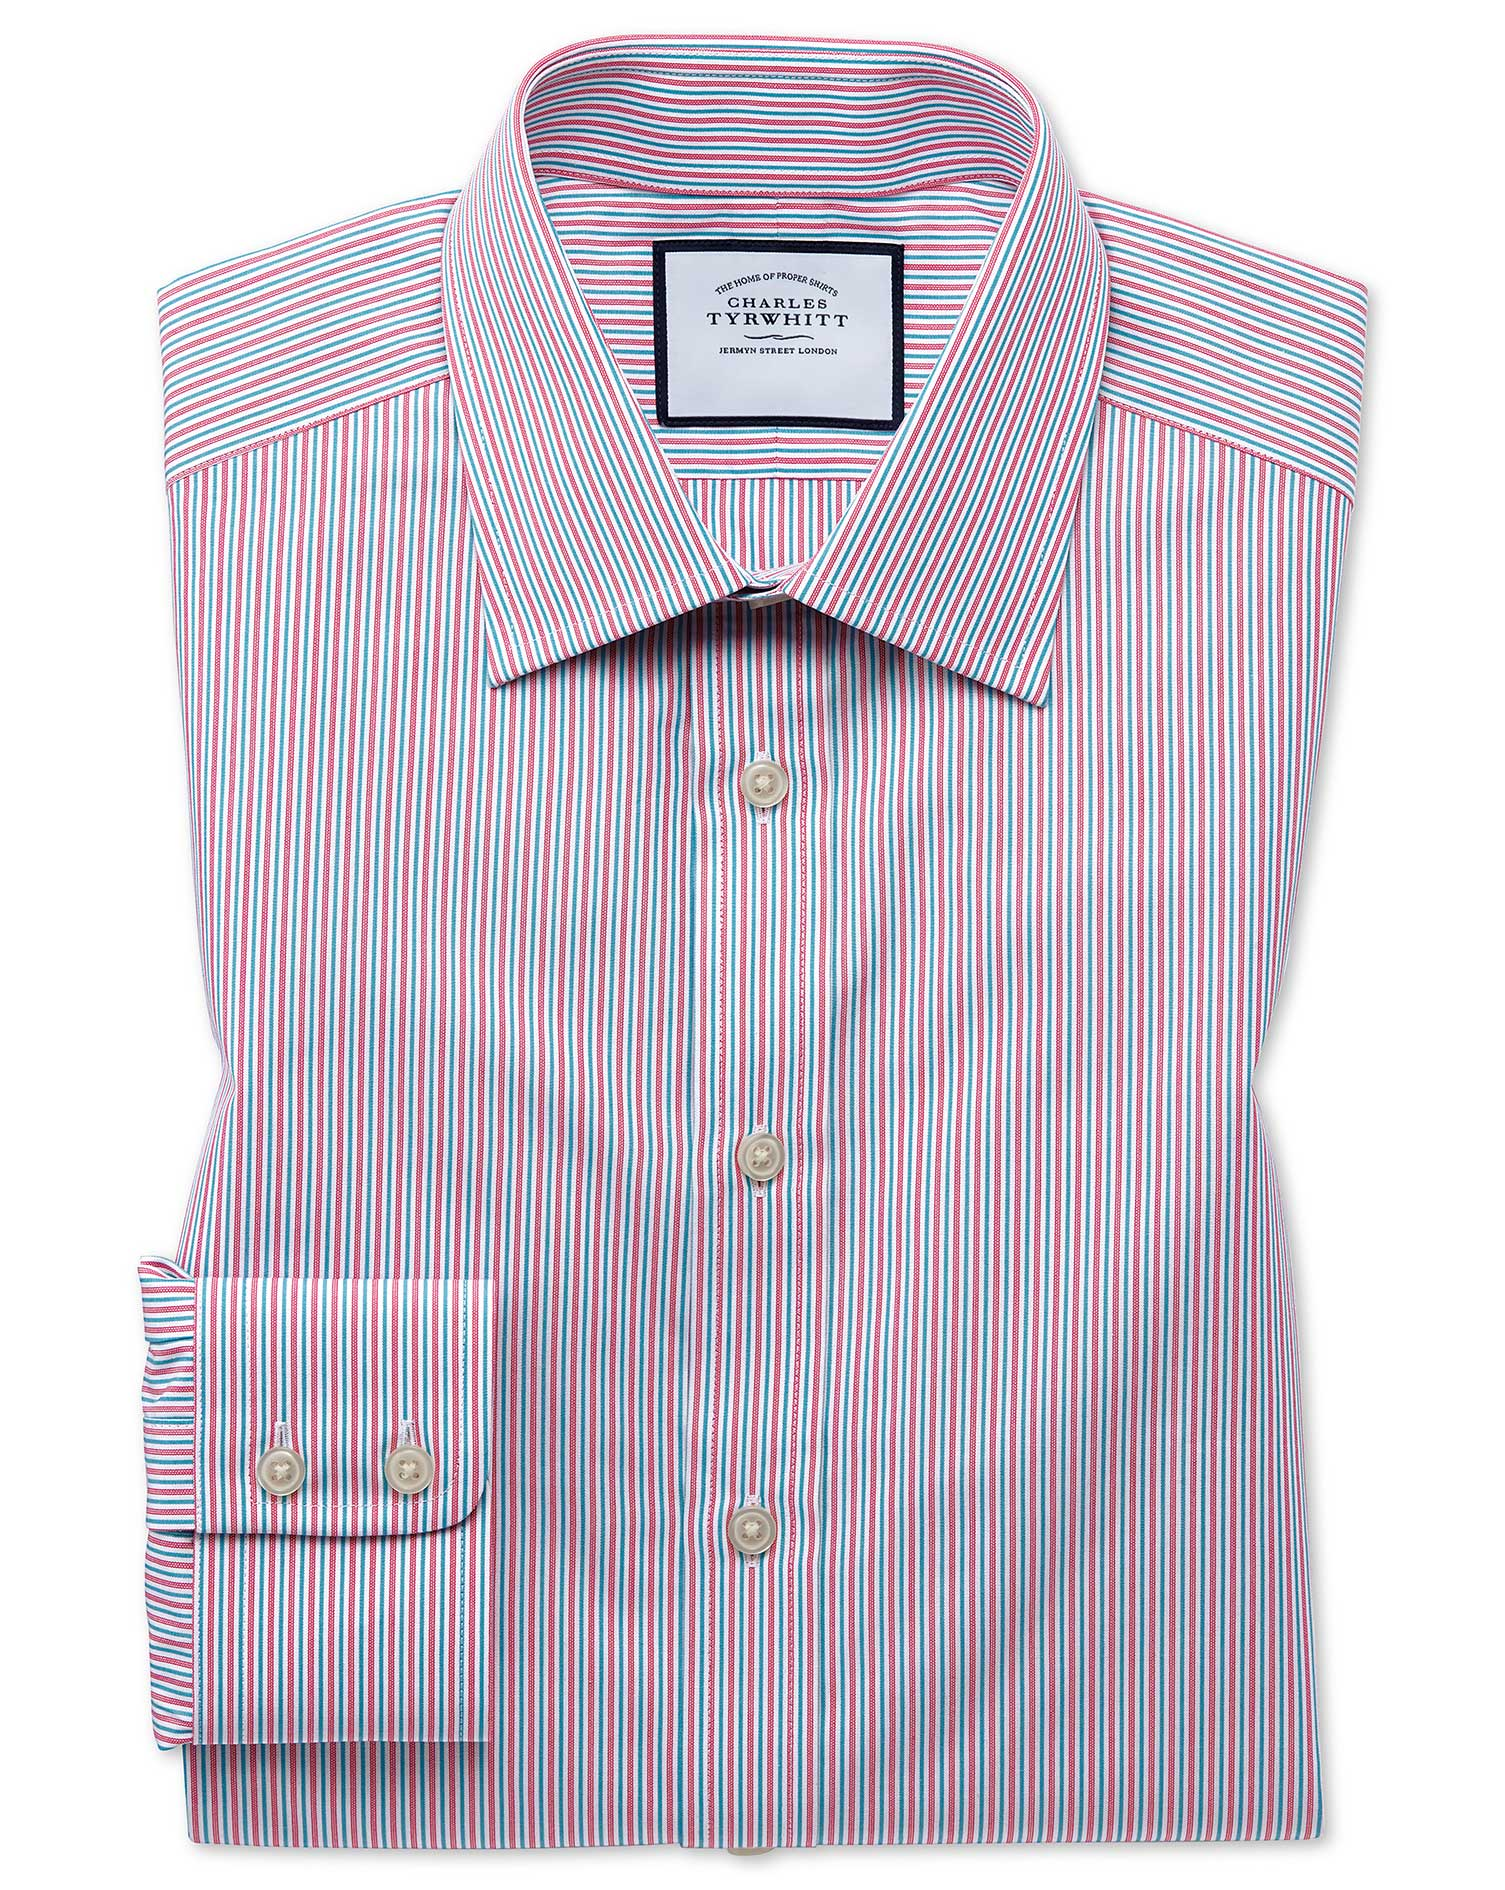 Classic Fit Egyptian Cotton Poplin Pink Multi Stripe Formal Shirt Single Cuff Size 16/36 by Charles